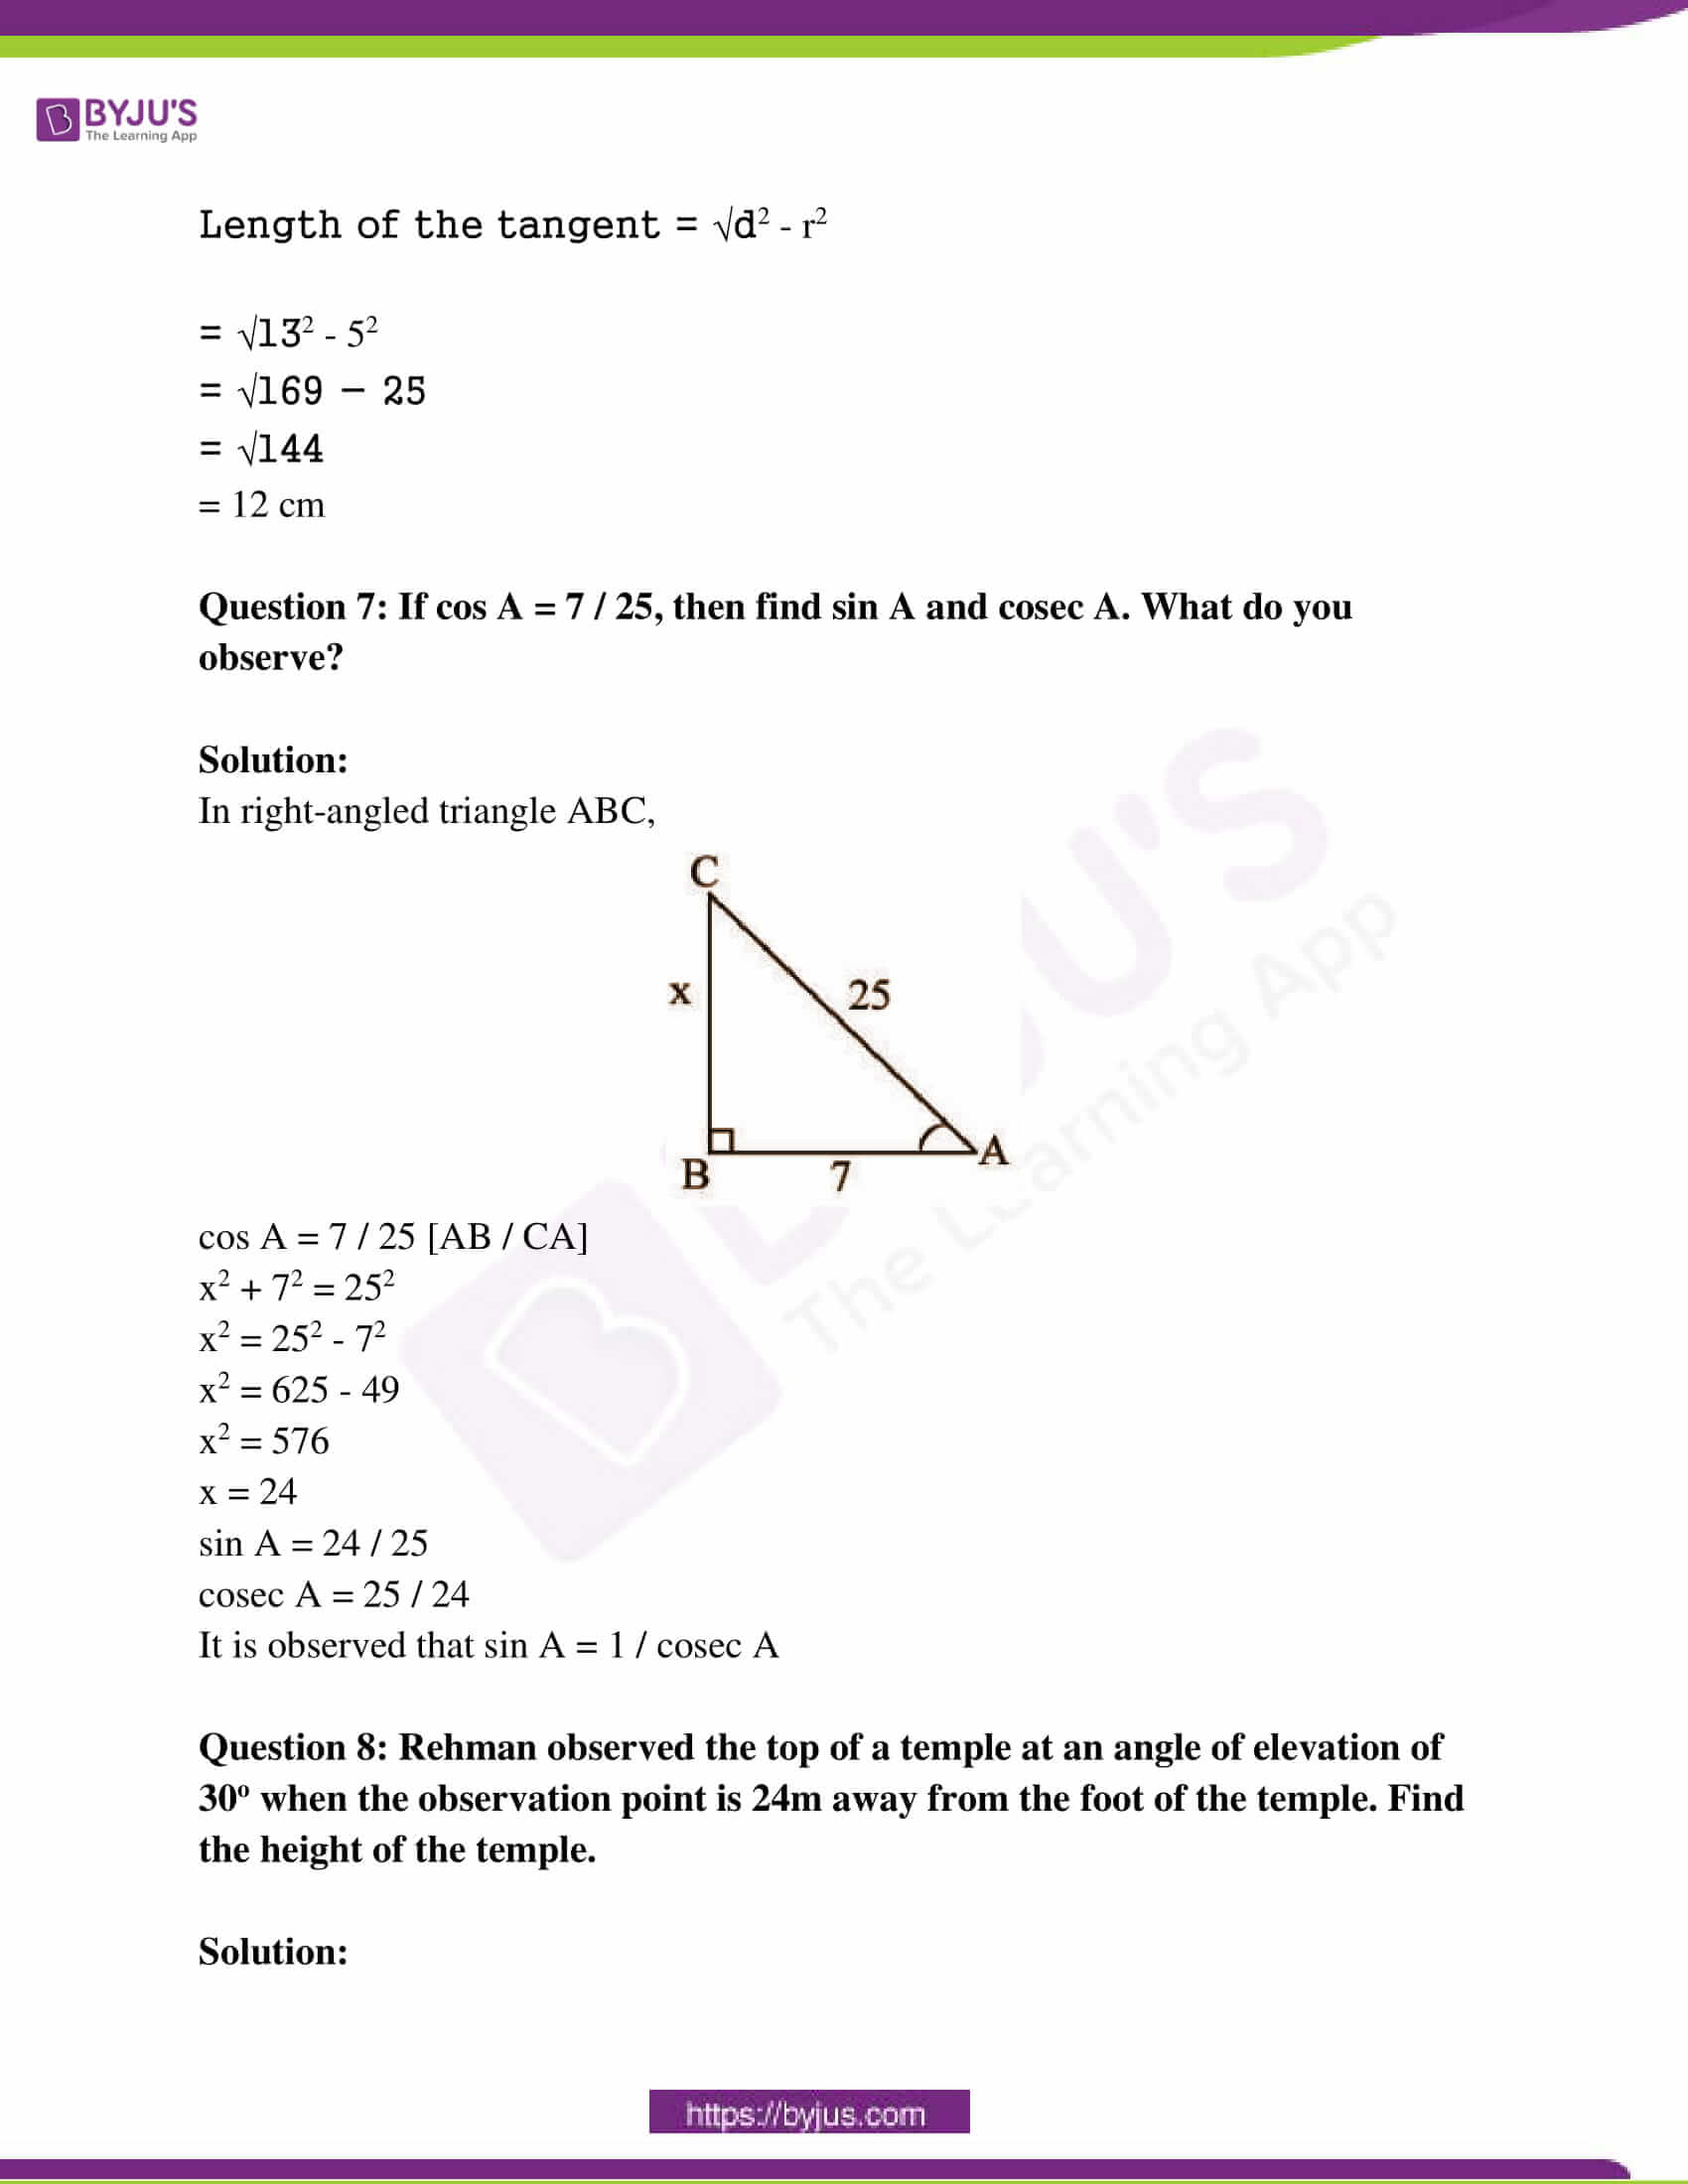 ap class 10 maths question paper 2 sol march 2019 03